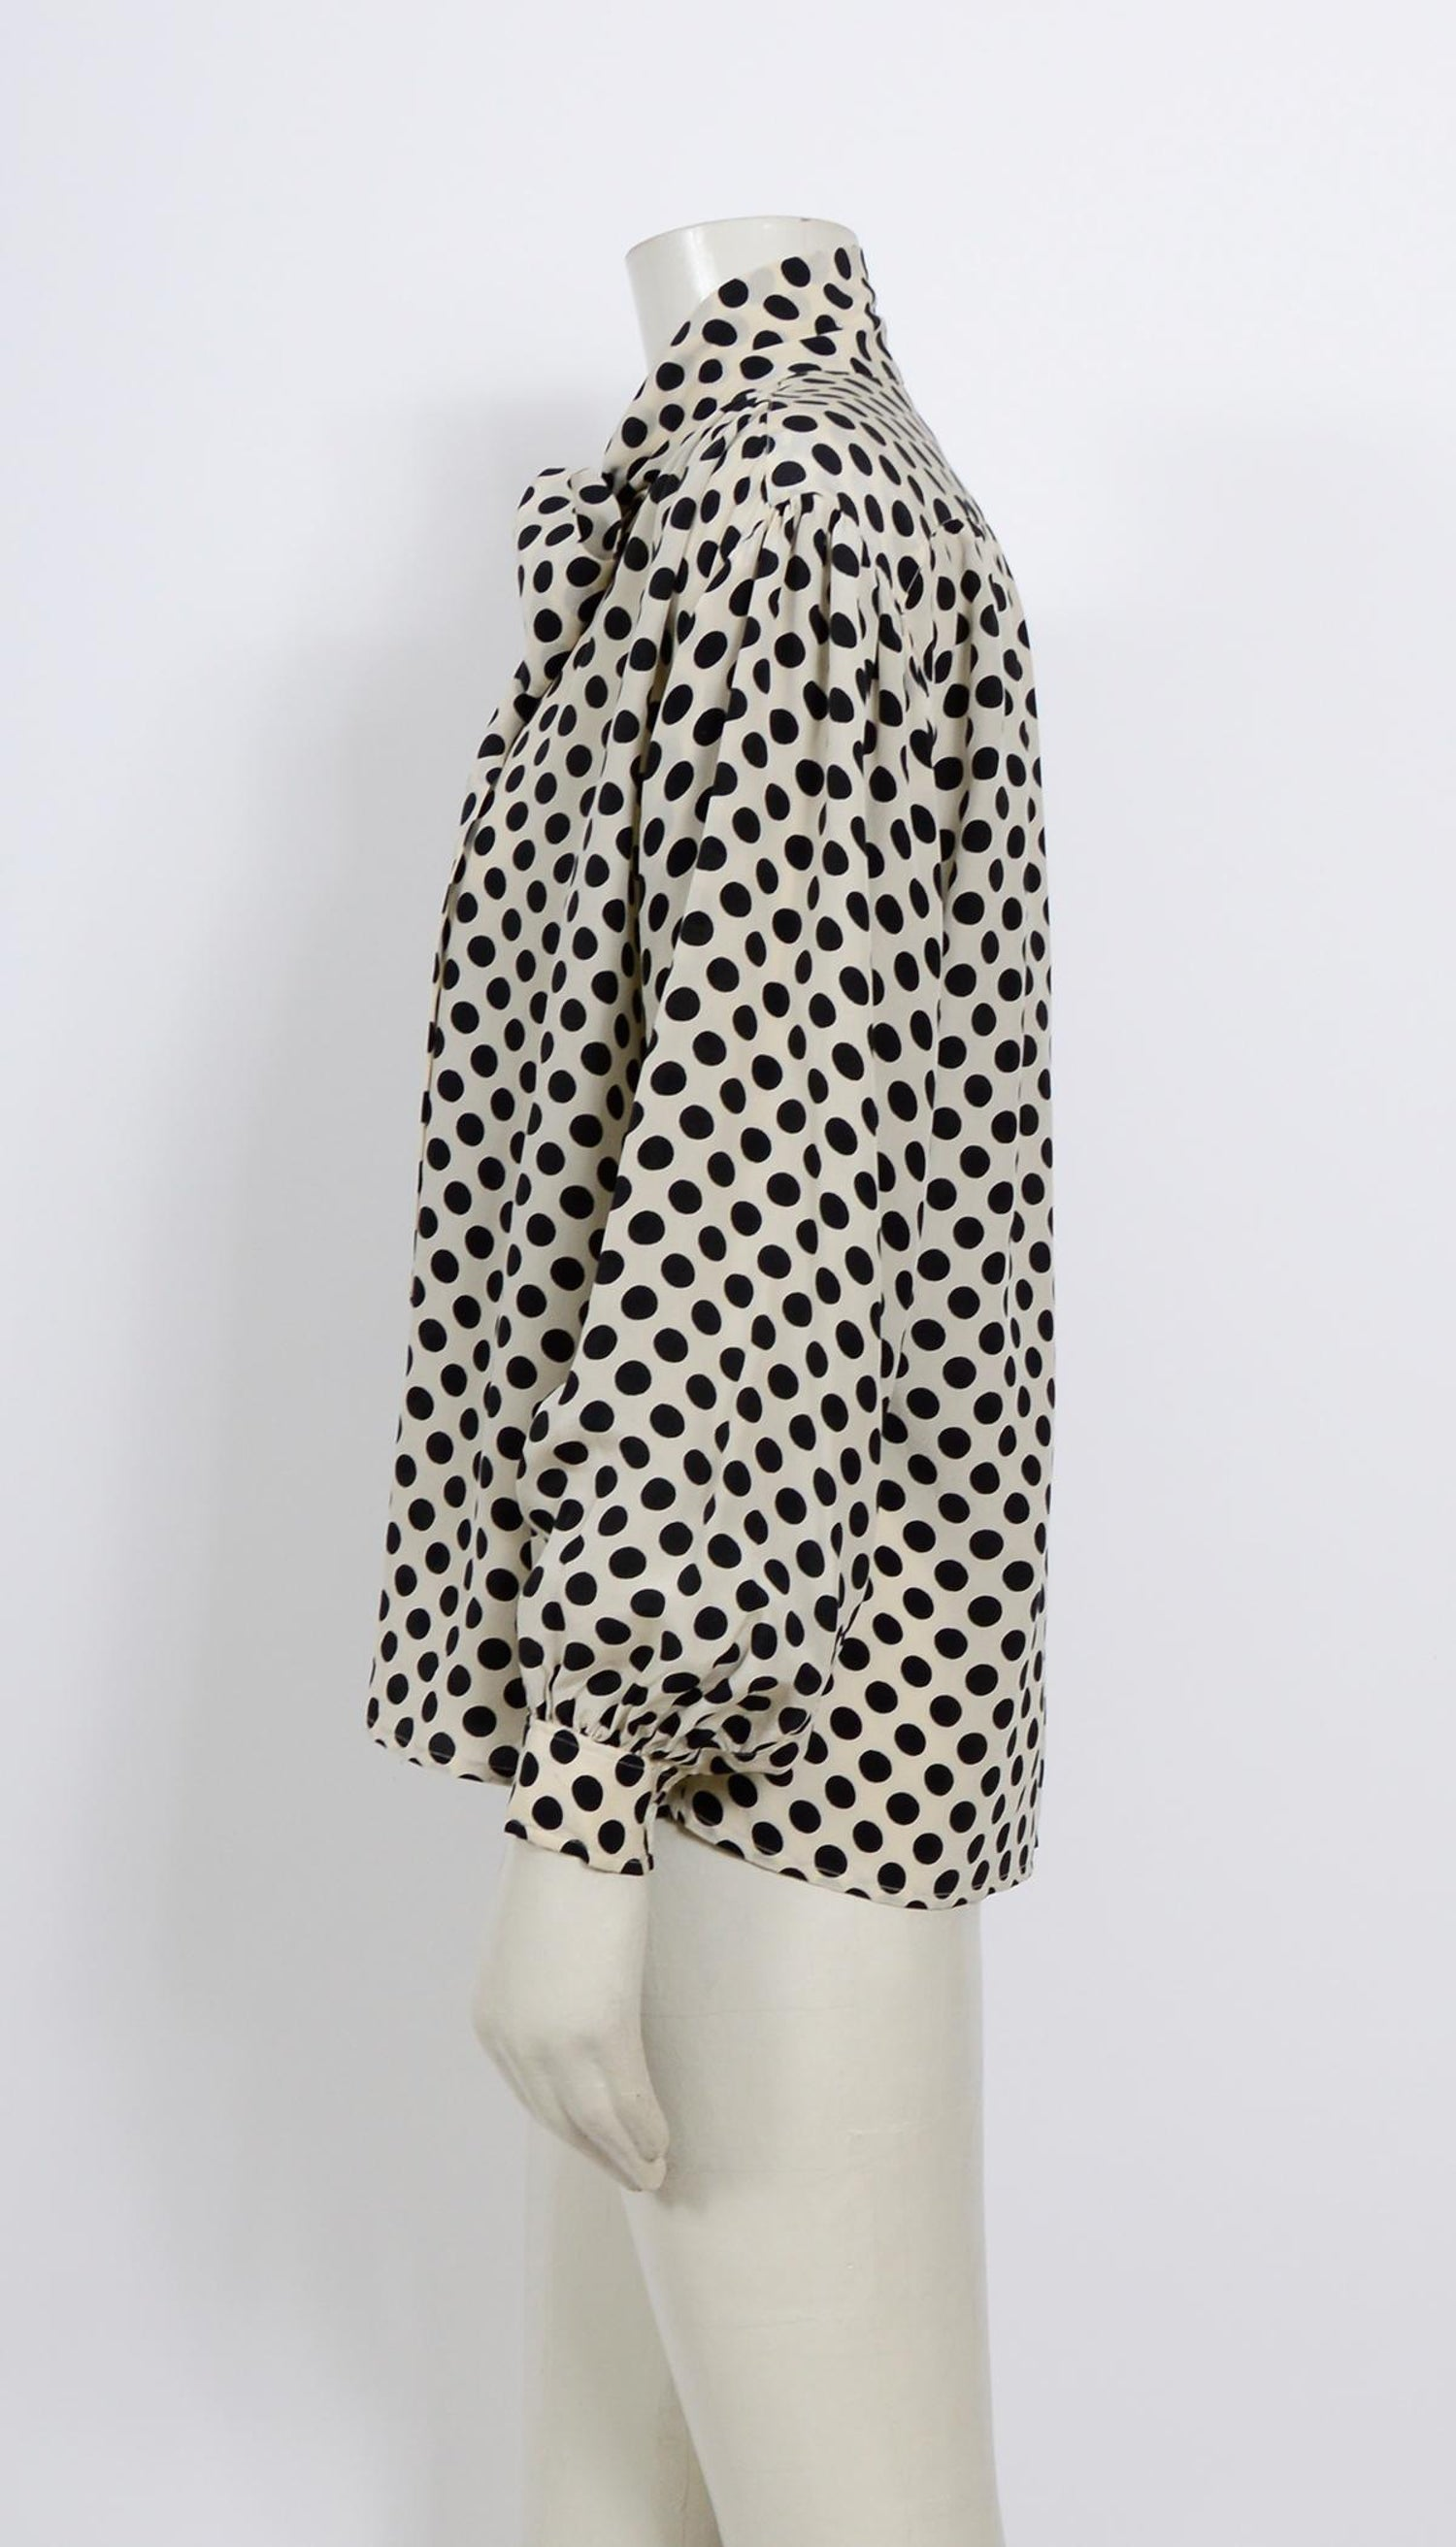 8073bae2 Yves Saint Laurent 1970s documented silk black and white dot pussy bow  blouse For Sale at 1stdibs